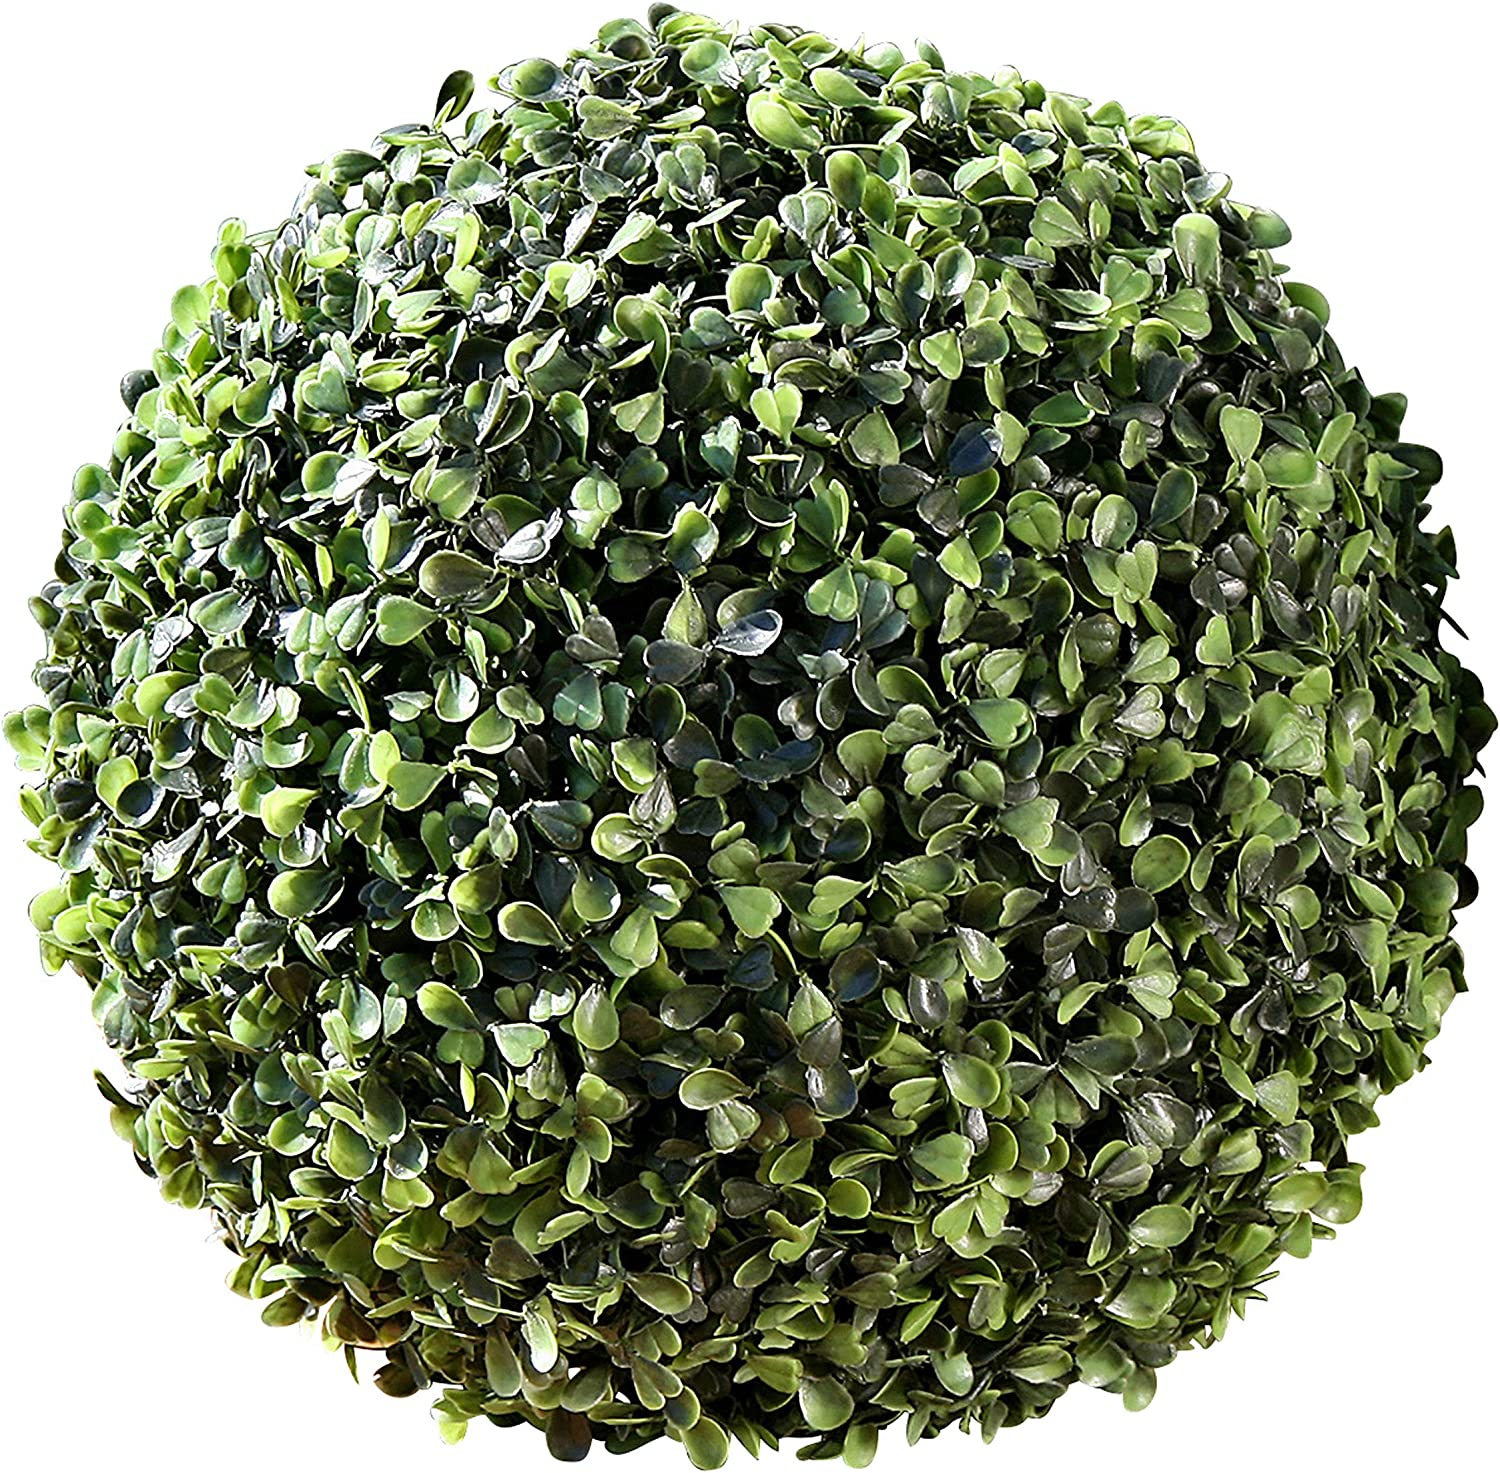 WHW Whole House Worlds Grammercy Boxwood Ball, 9 inch, Lush Green, Bowl Filler Globe, Faux Boxwood Leaves, Topiary, Plastic